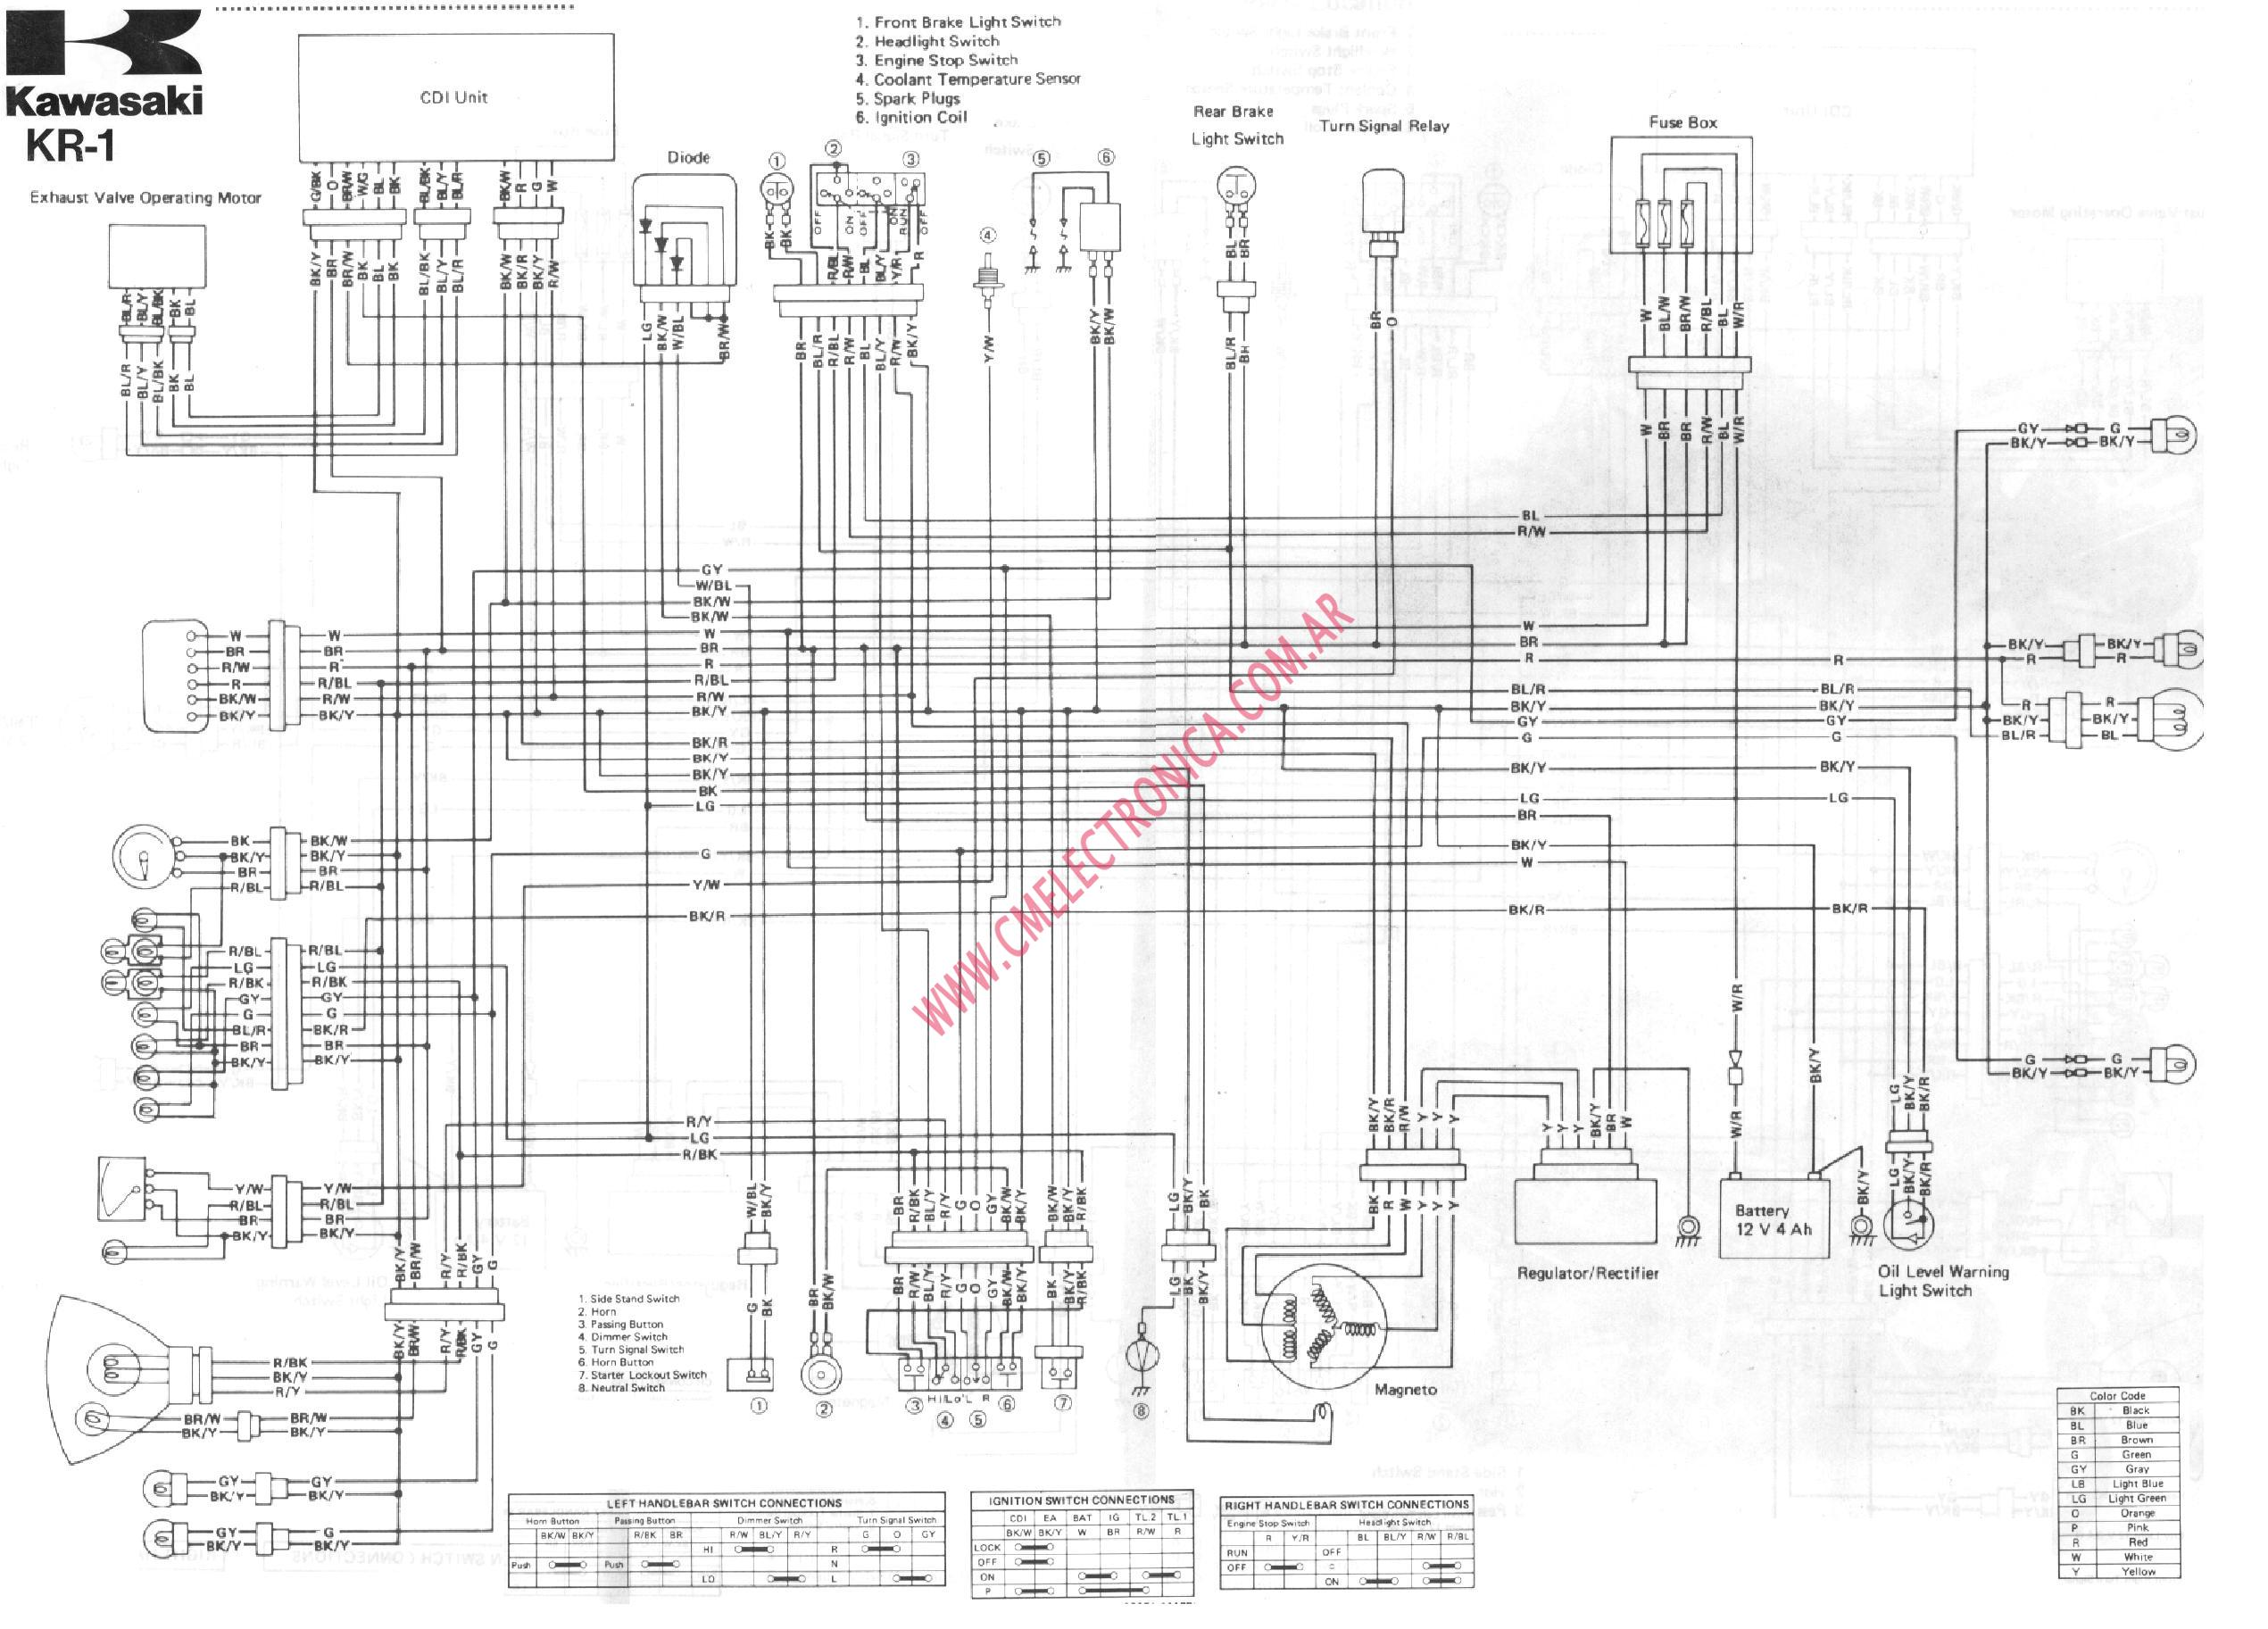 power wheels kawasaki wiring diagram freightliner chassis 4 wheeler prairie 360